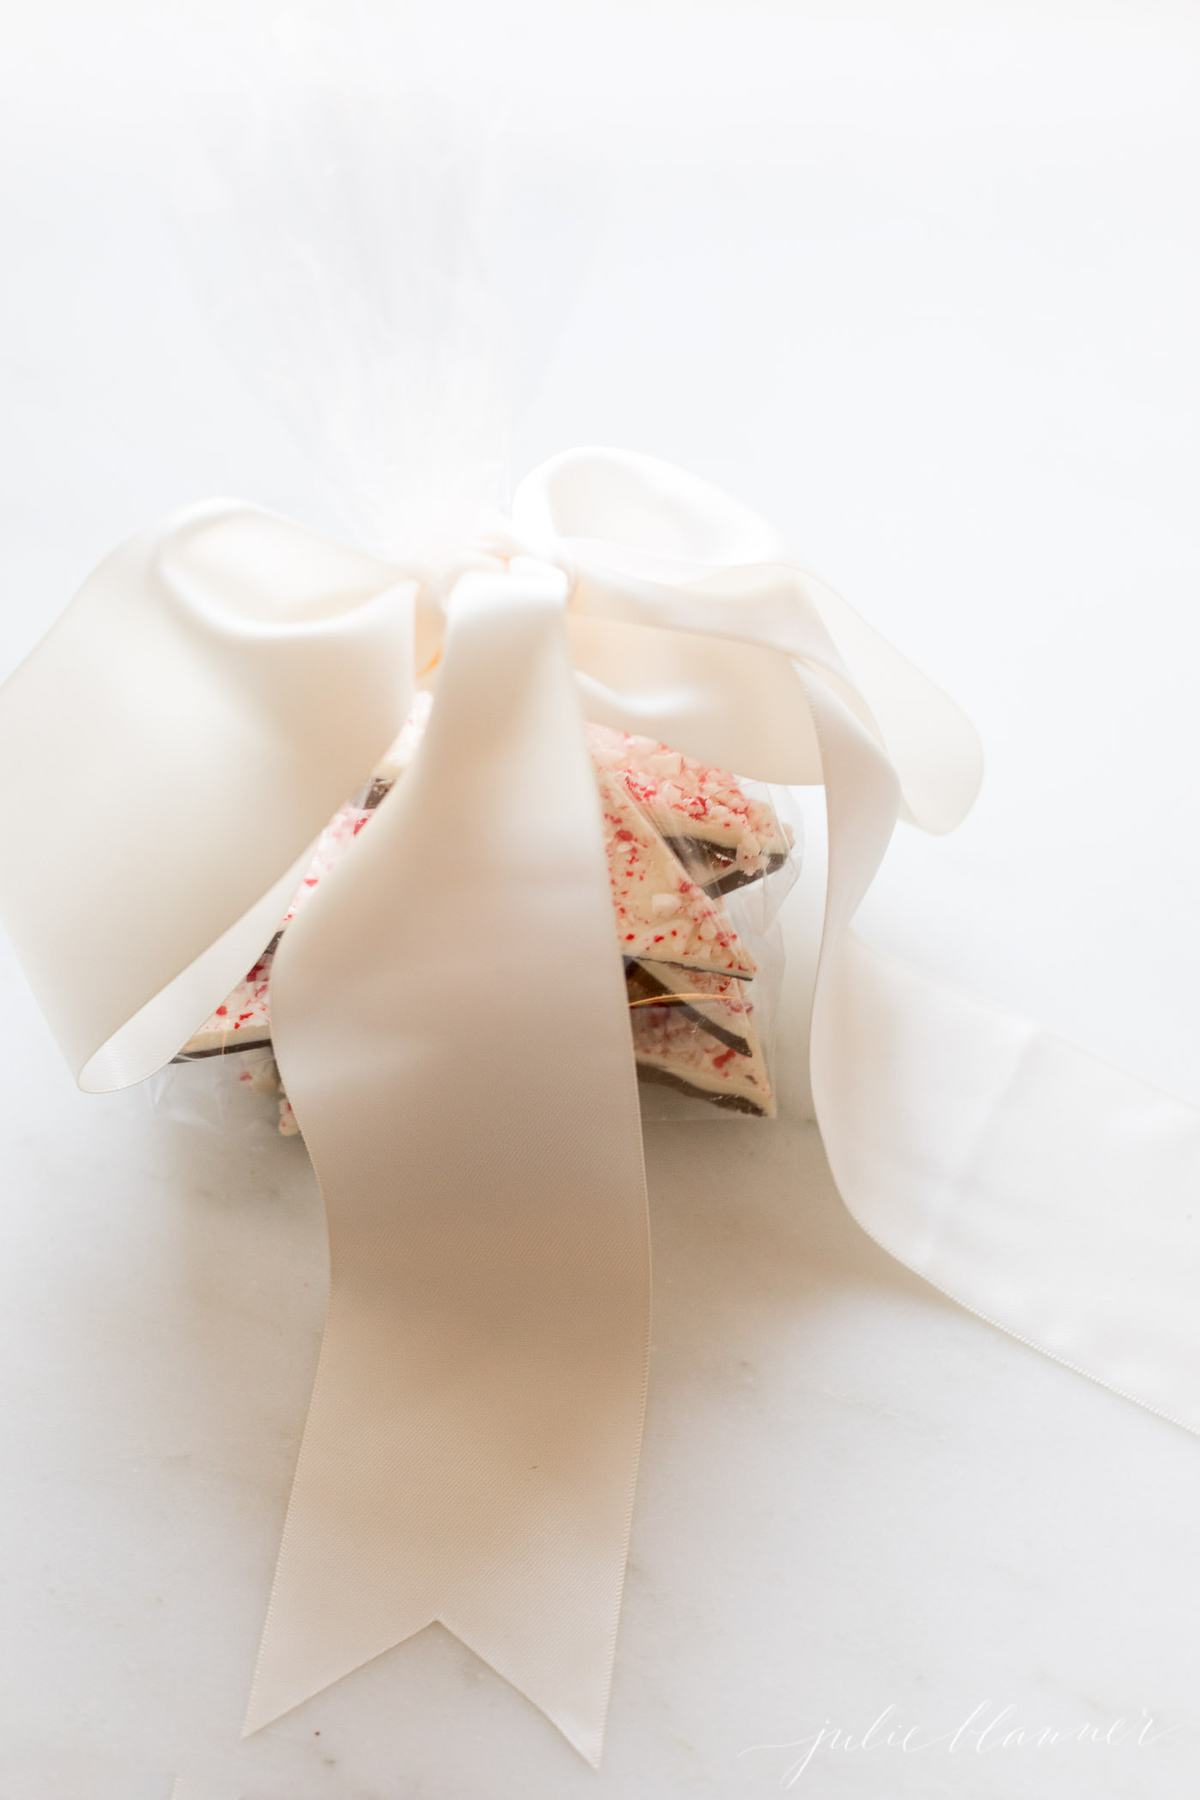 salted peppermint bark gift wrapped with a large bow